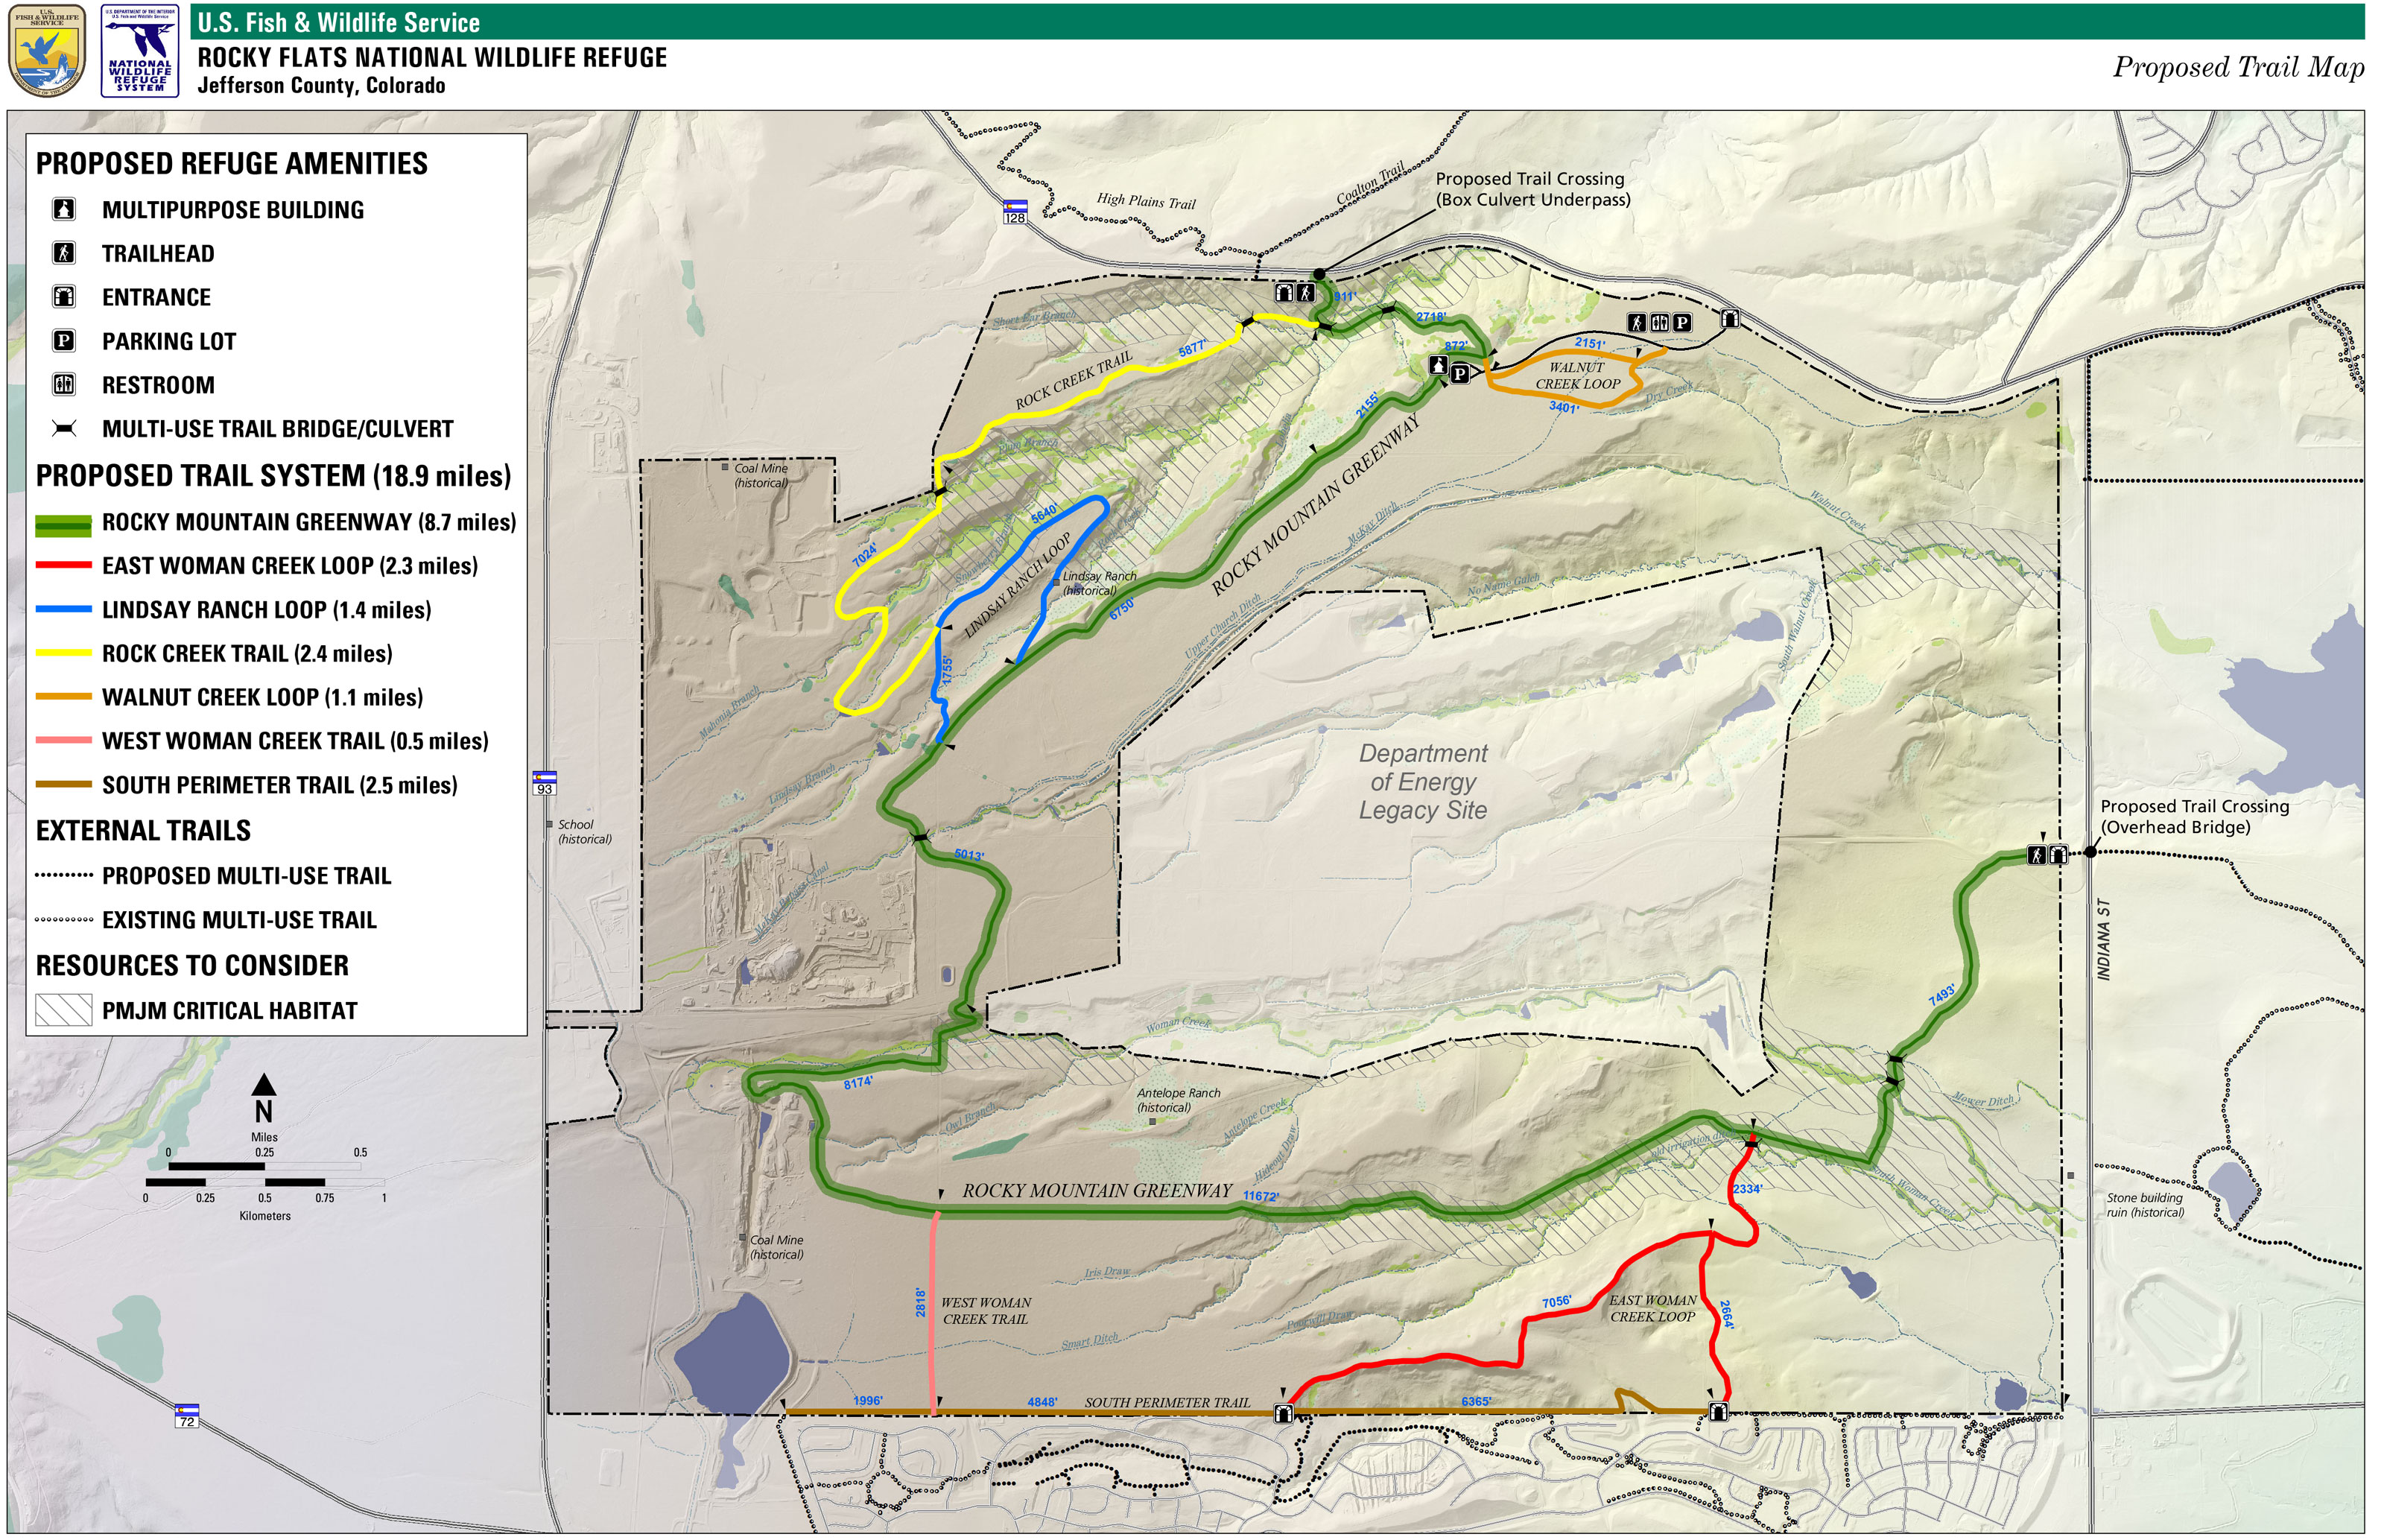 Map: USFWS Rocky Flats National Wildlife Refuge Trail Map - Courtesy